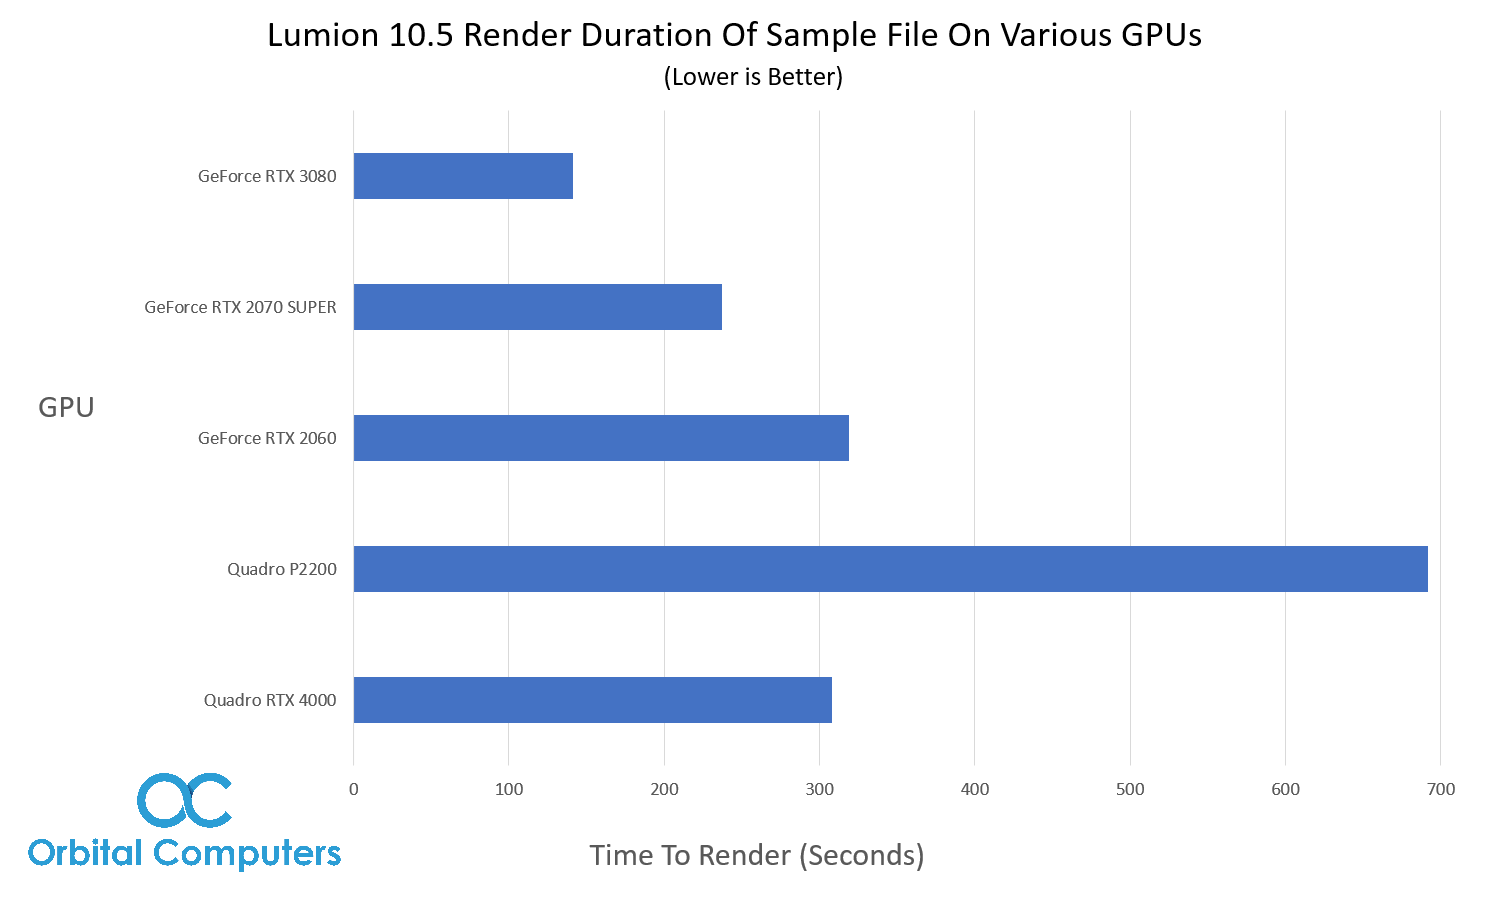 fastest gpu for lumion rendering 2020